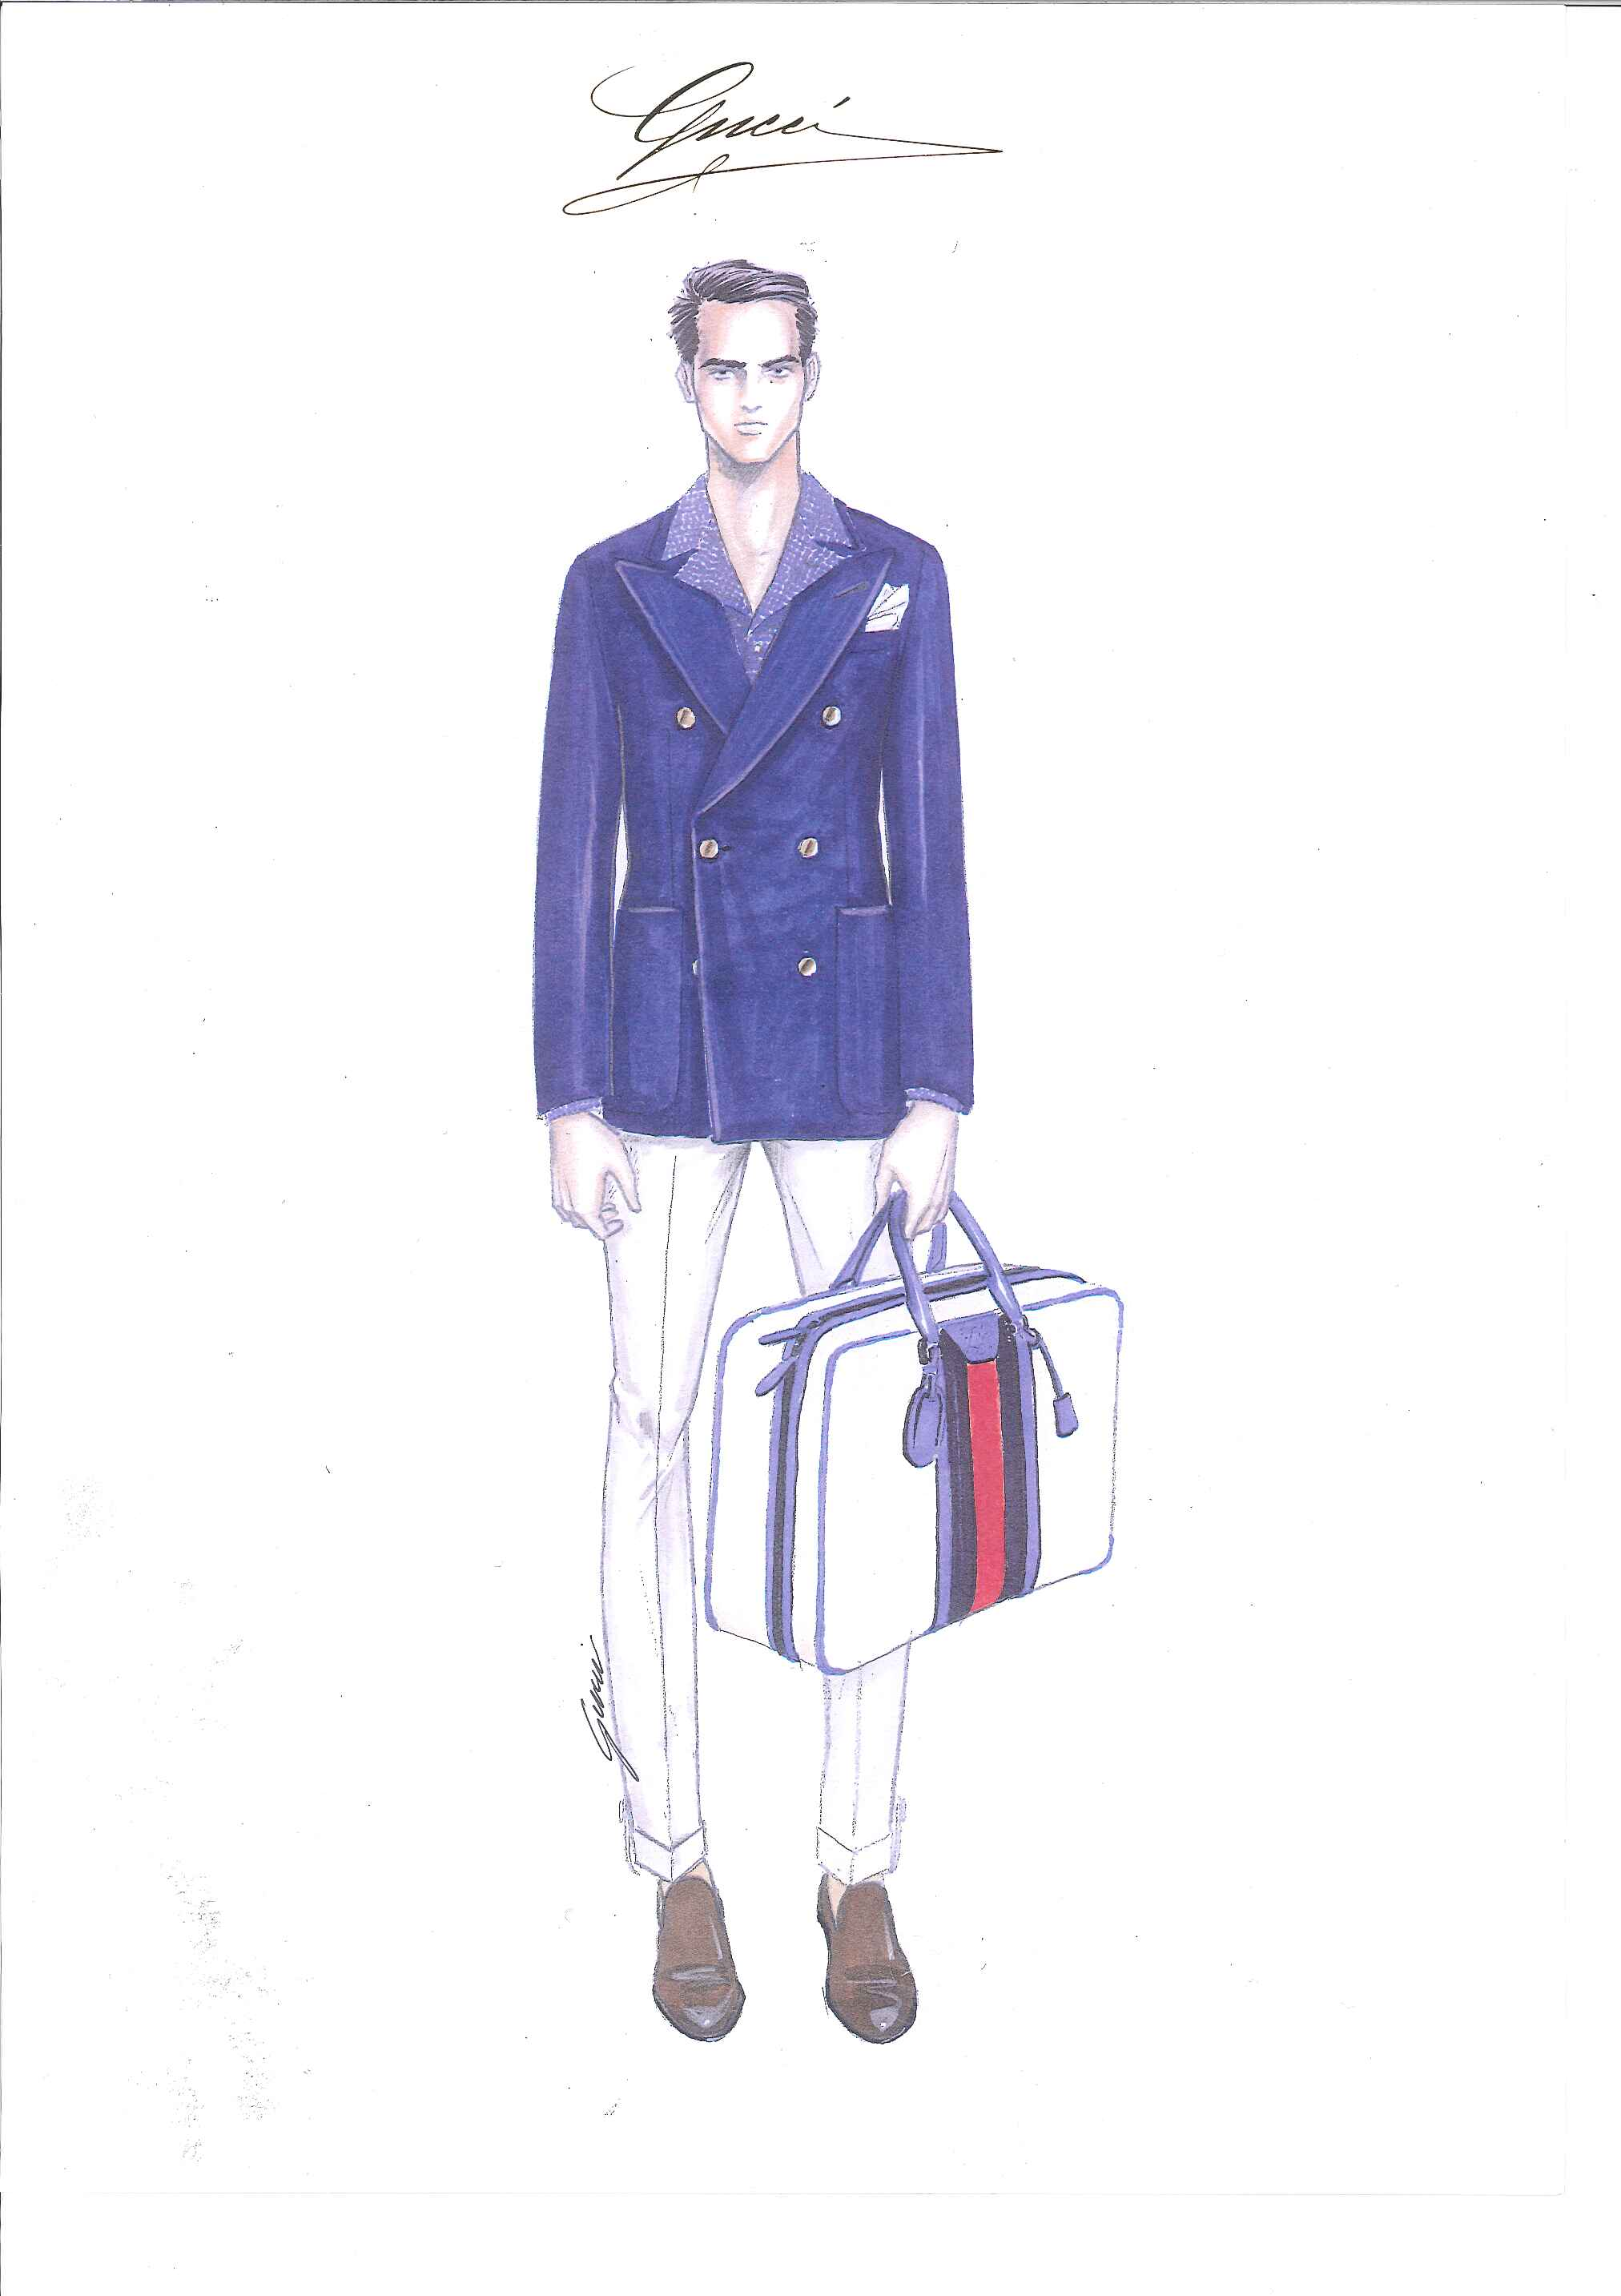 Lapo's wardrobe_sketch for March 13 release